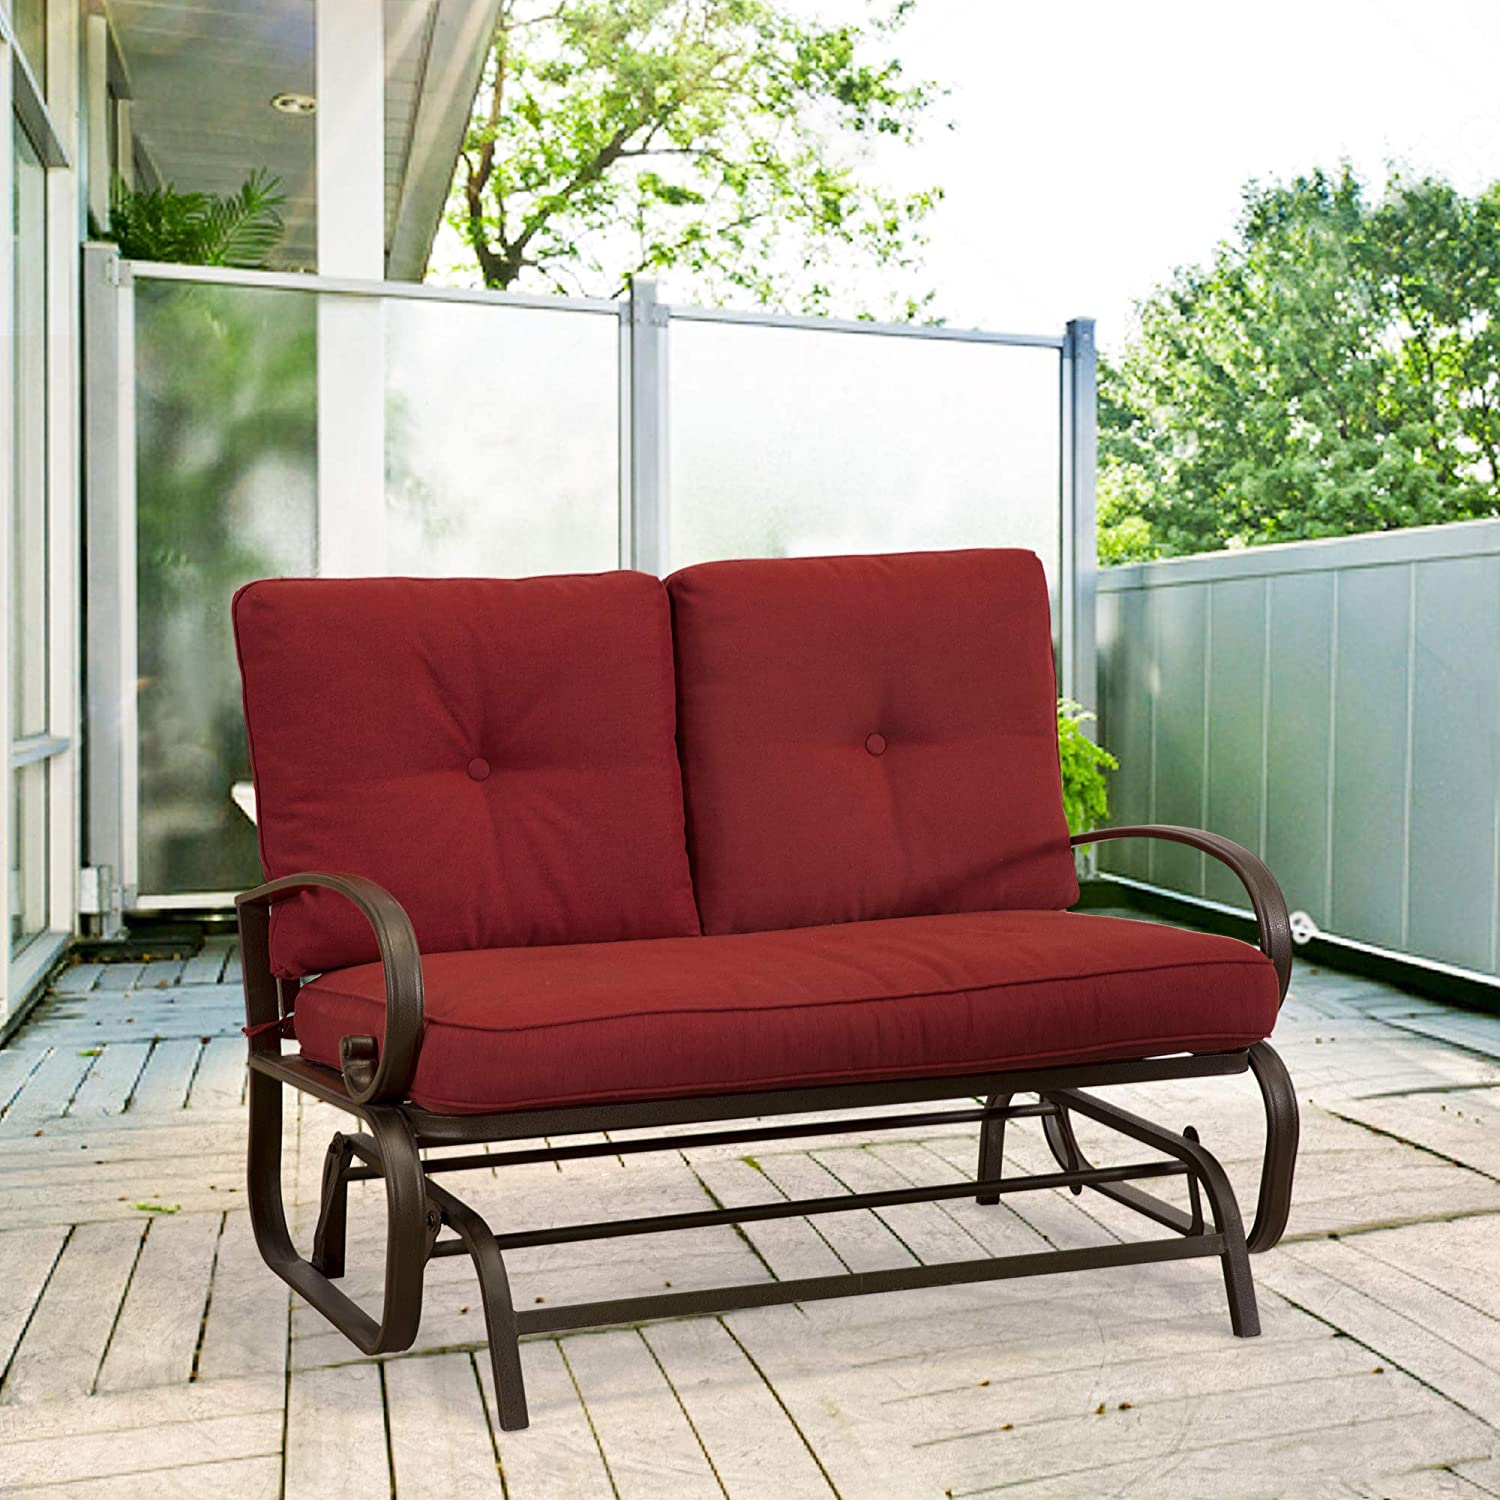 Amazon com homevibes outdoor glider porch glider patio bench loveseat furniture rocker wrought iron outside chair swing 2 seats lounge cushions